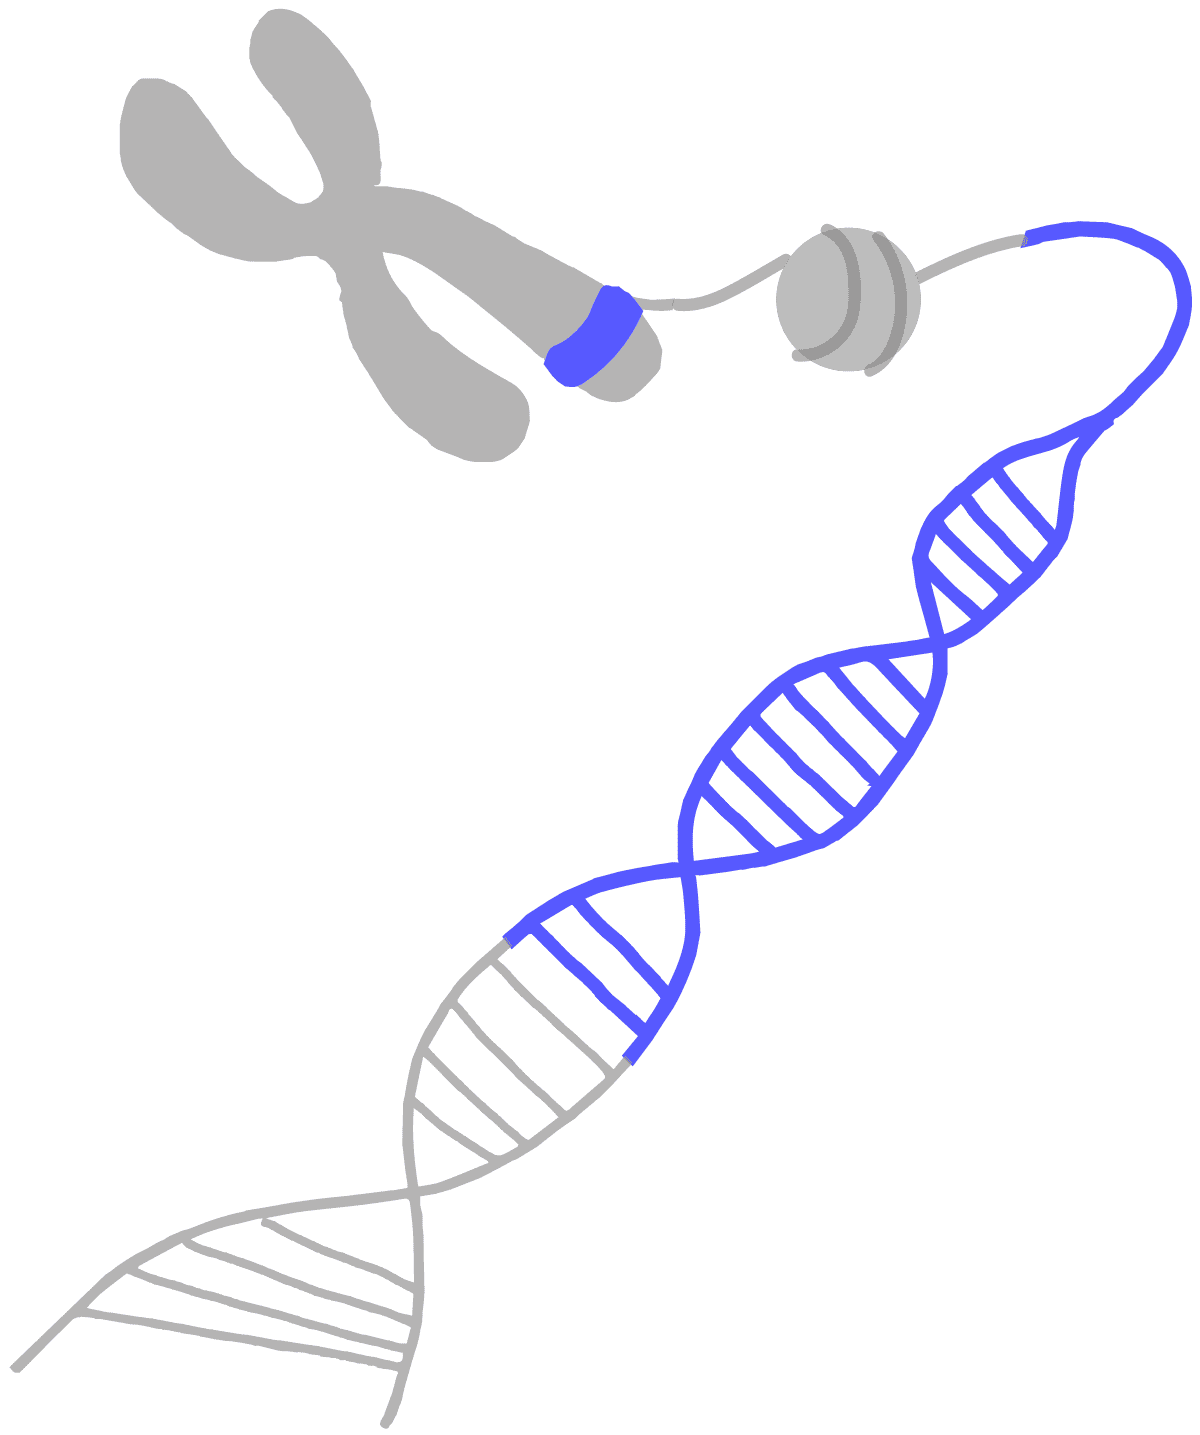 Image of a blue gene on a chromosome. The chromosome is unwound to expose nucleosomes for acetylation to ultimately expose DNA for transcription.